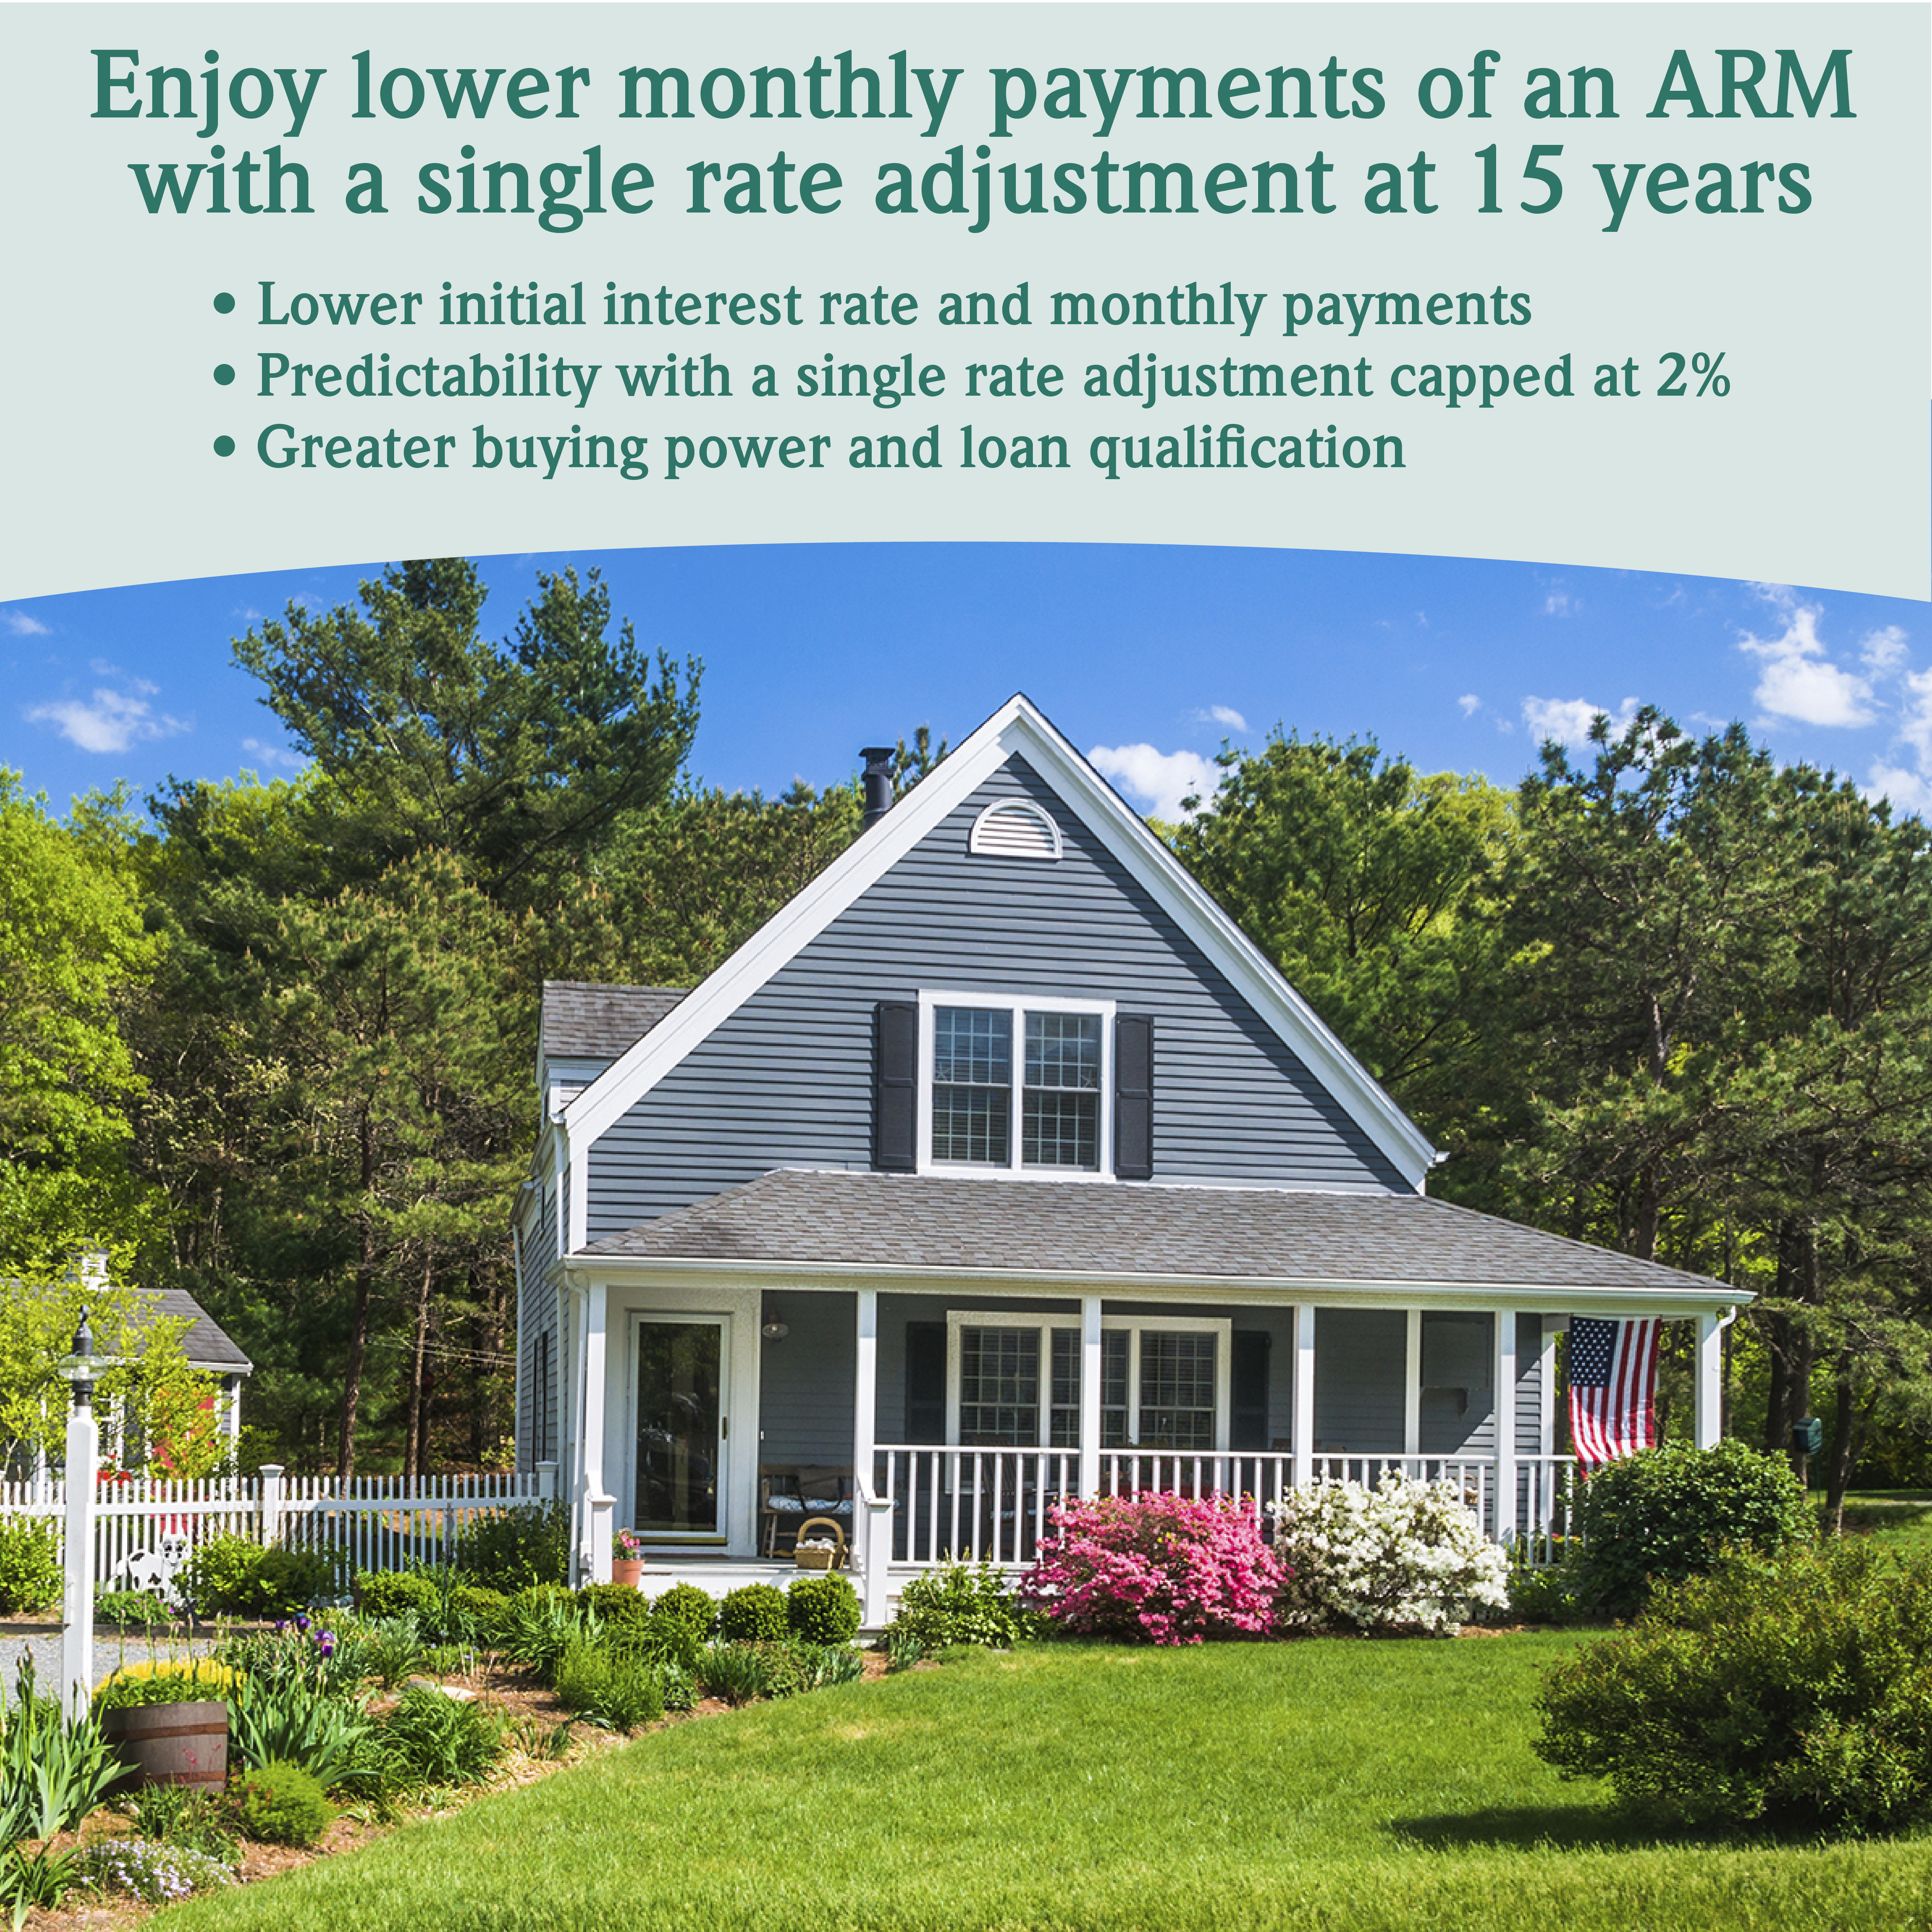 15/15 ARM mortgage from The Coop